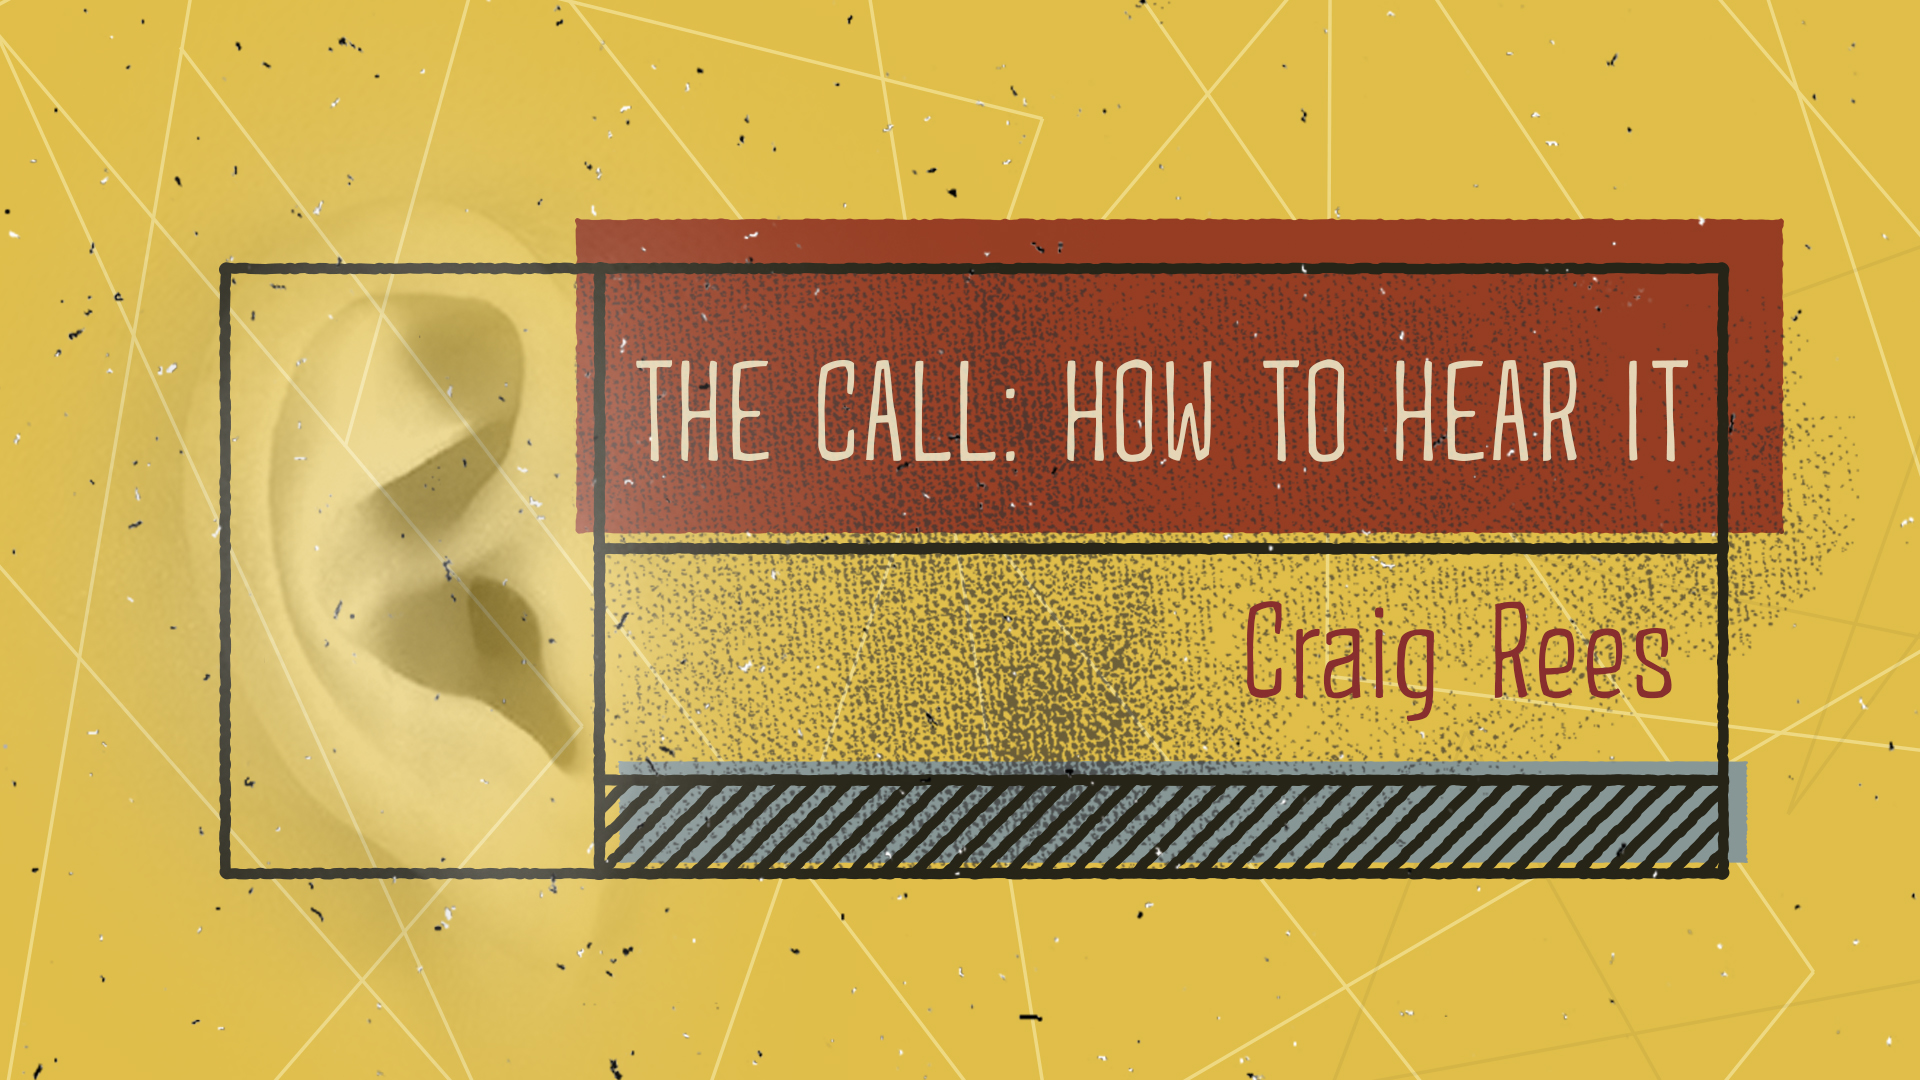 The Call: How to Hear It